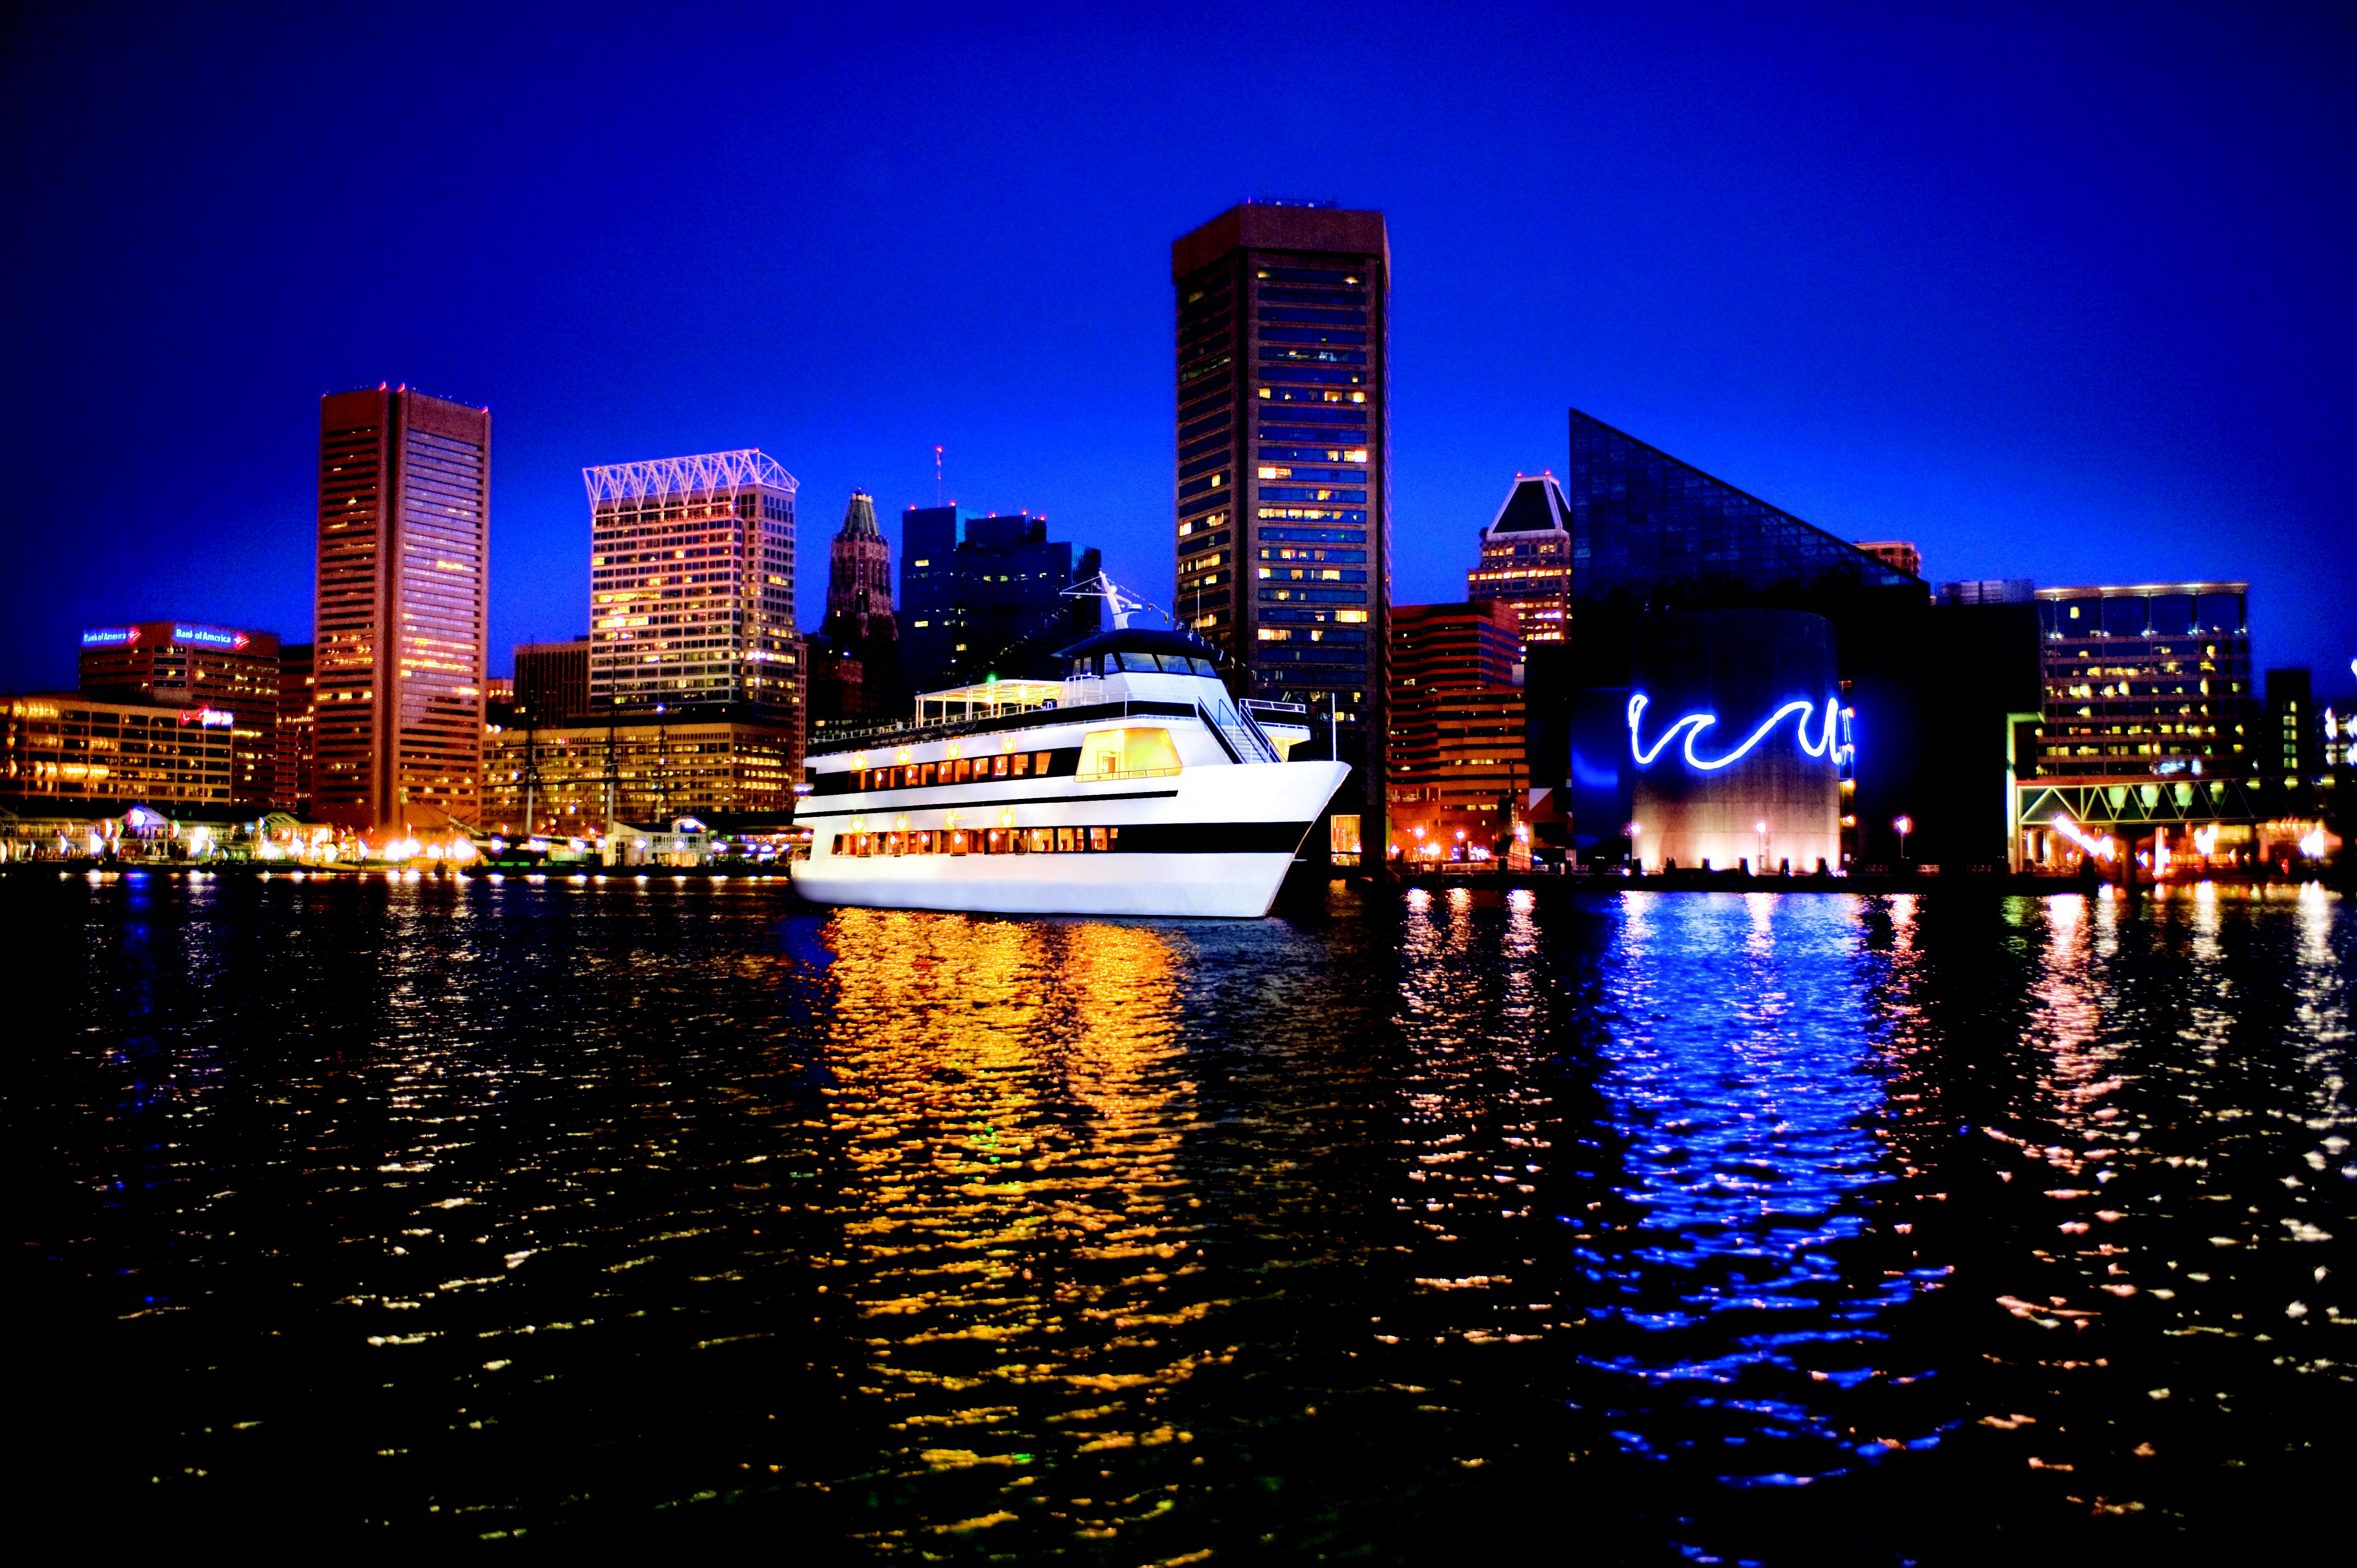 Baltimore Cruises Christmas New Year 2019 2020 A Guide to New Year's Eve in Baltimore